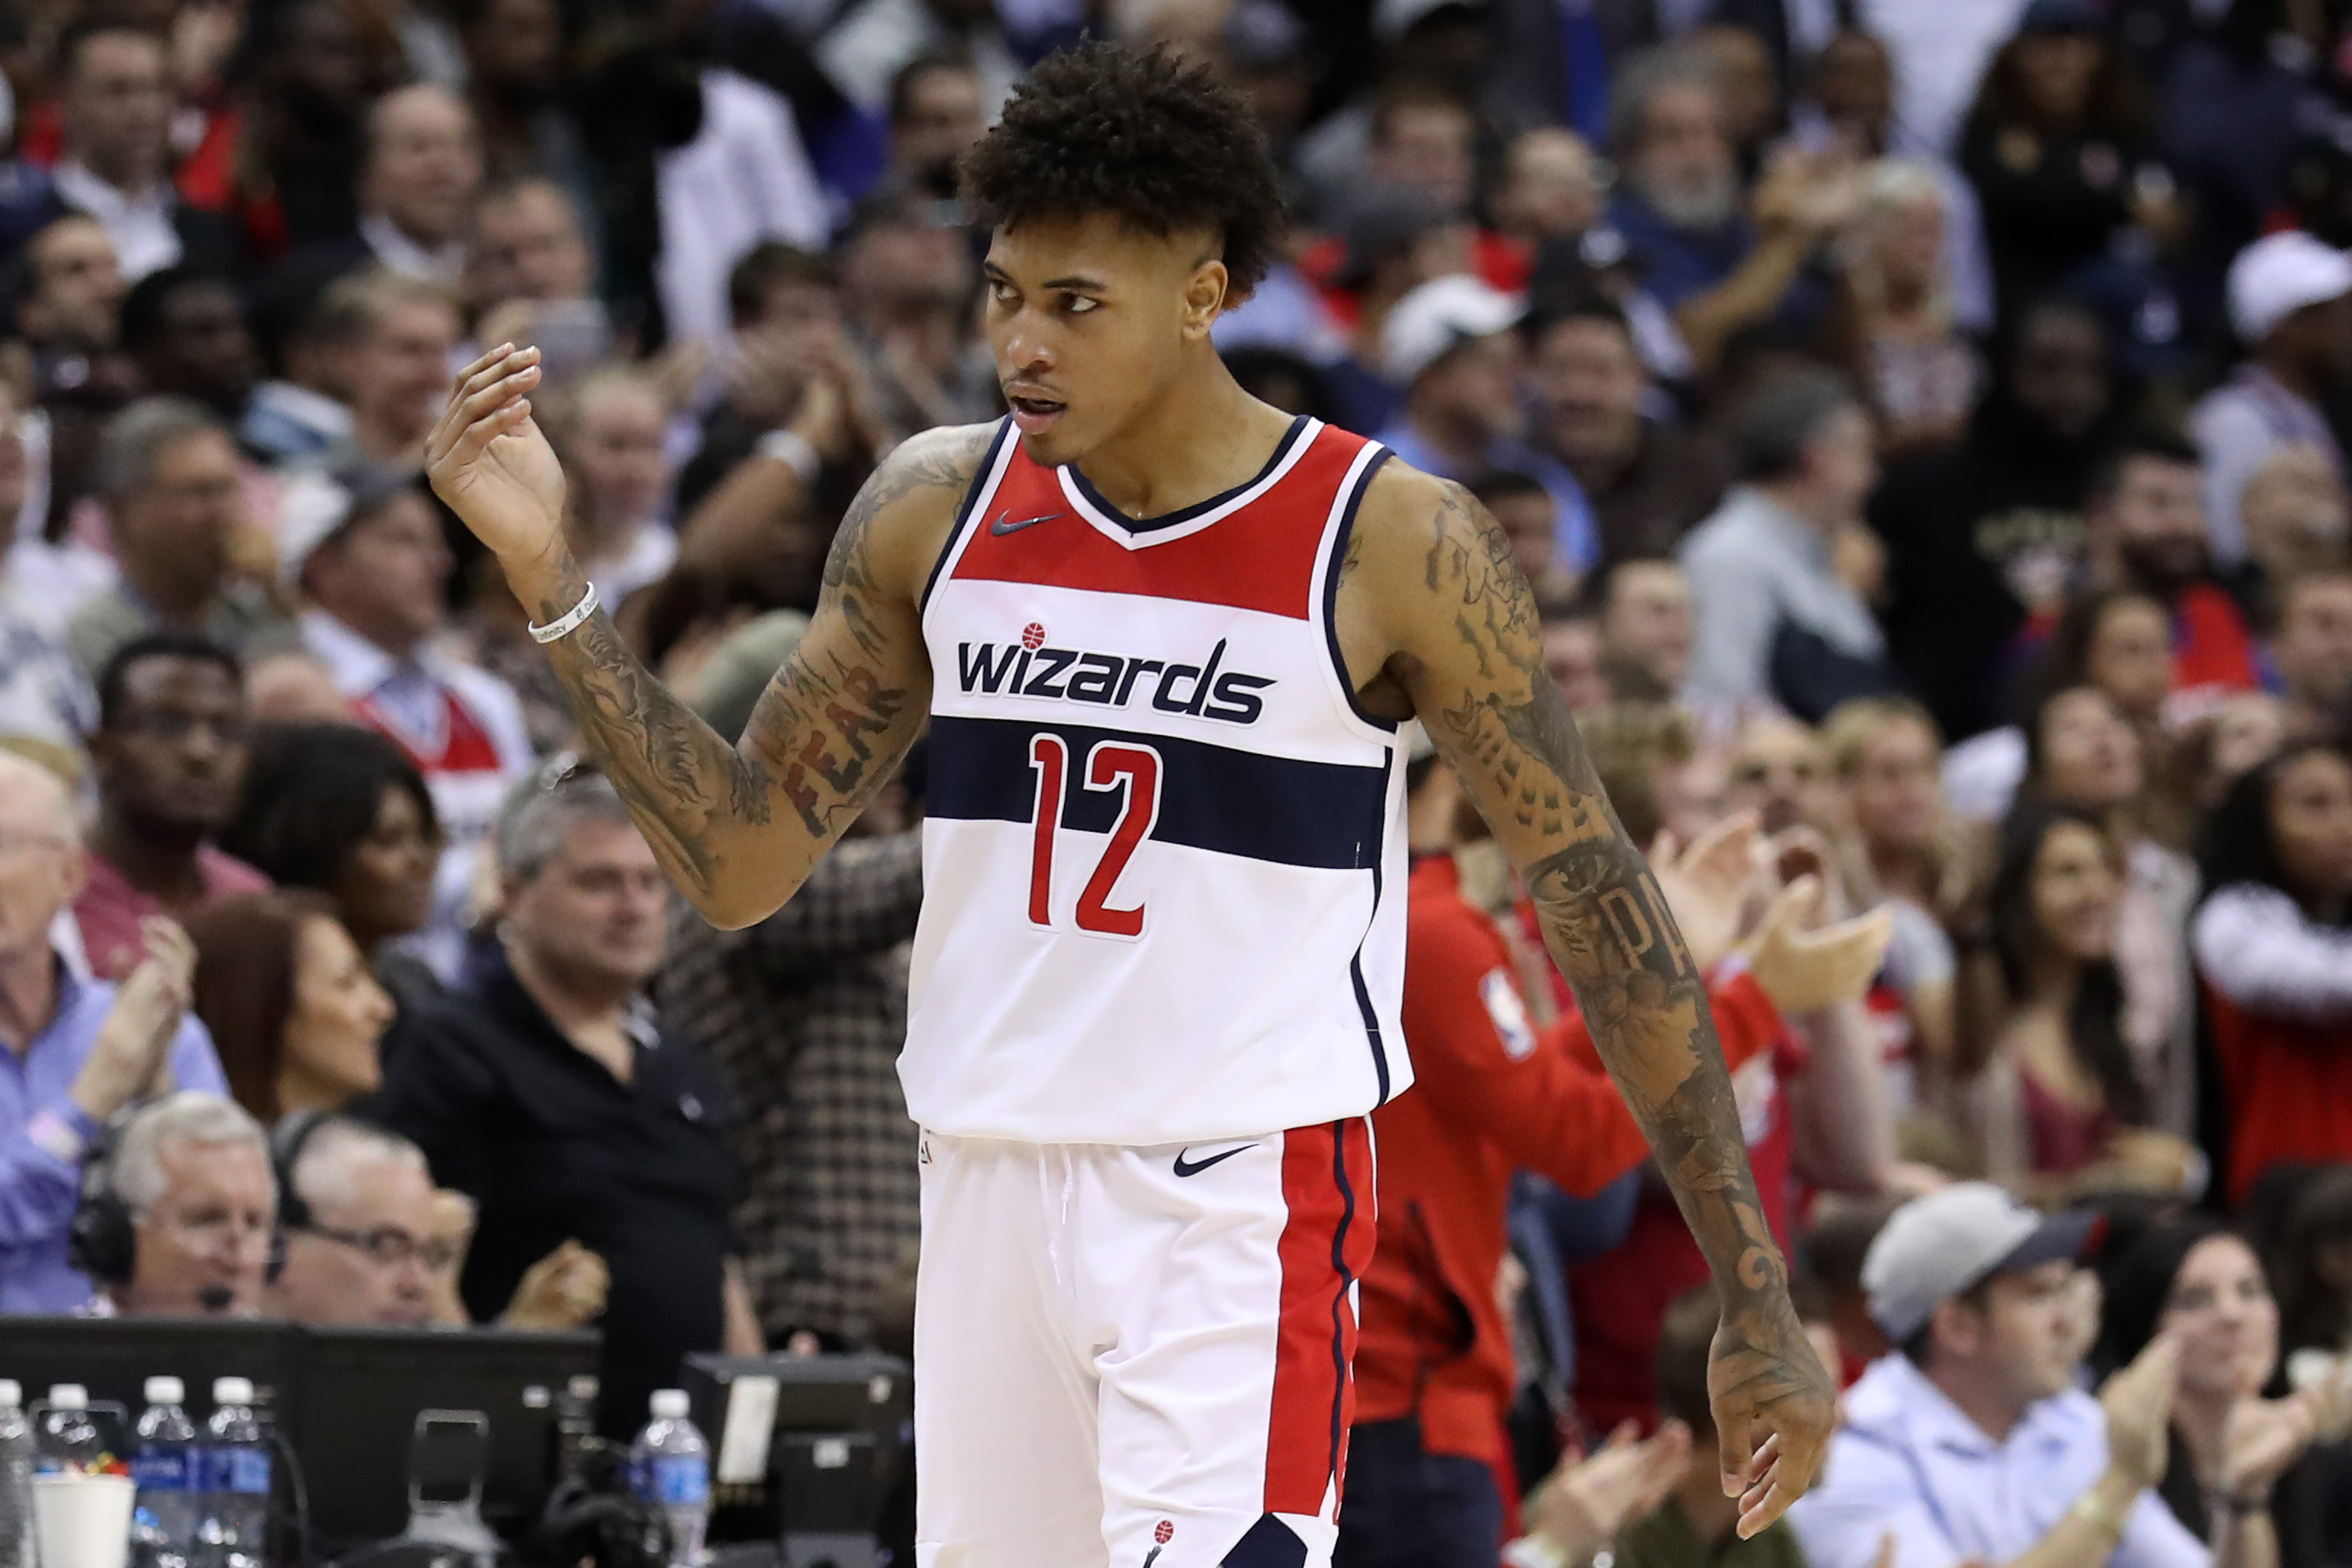 The Washington Wizards look to start this season off right